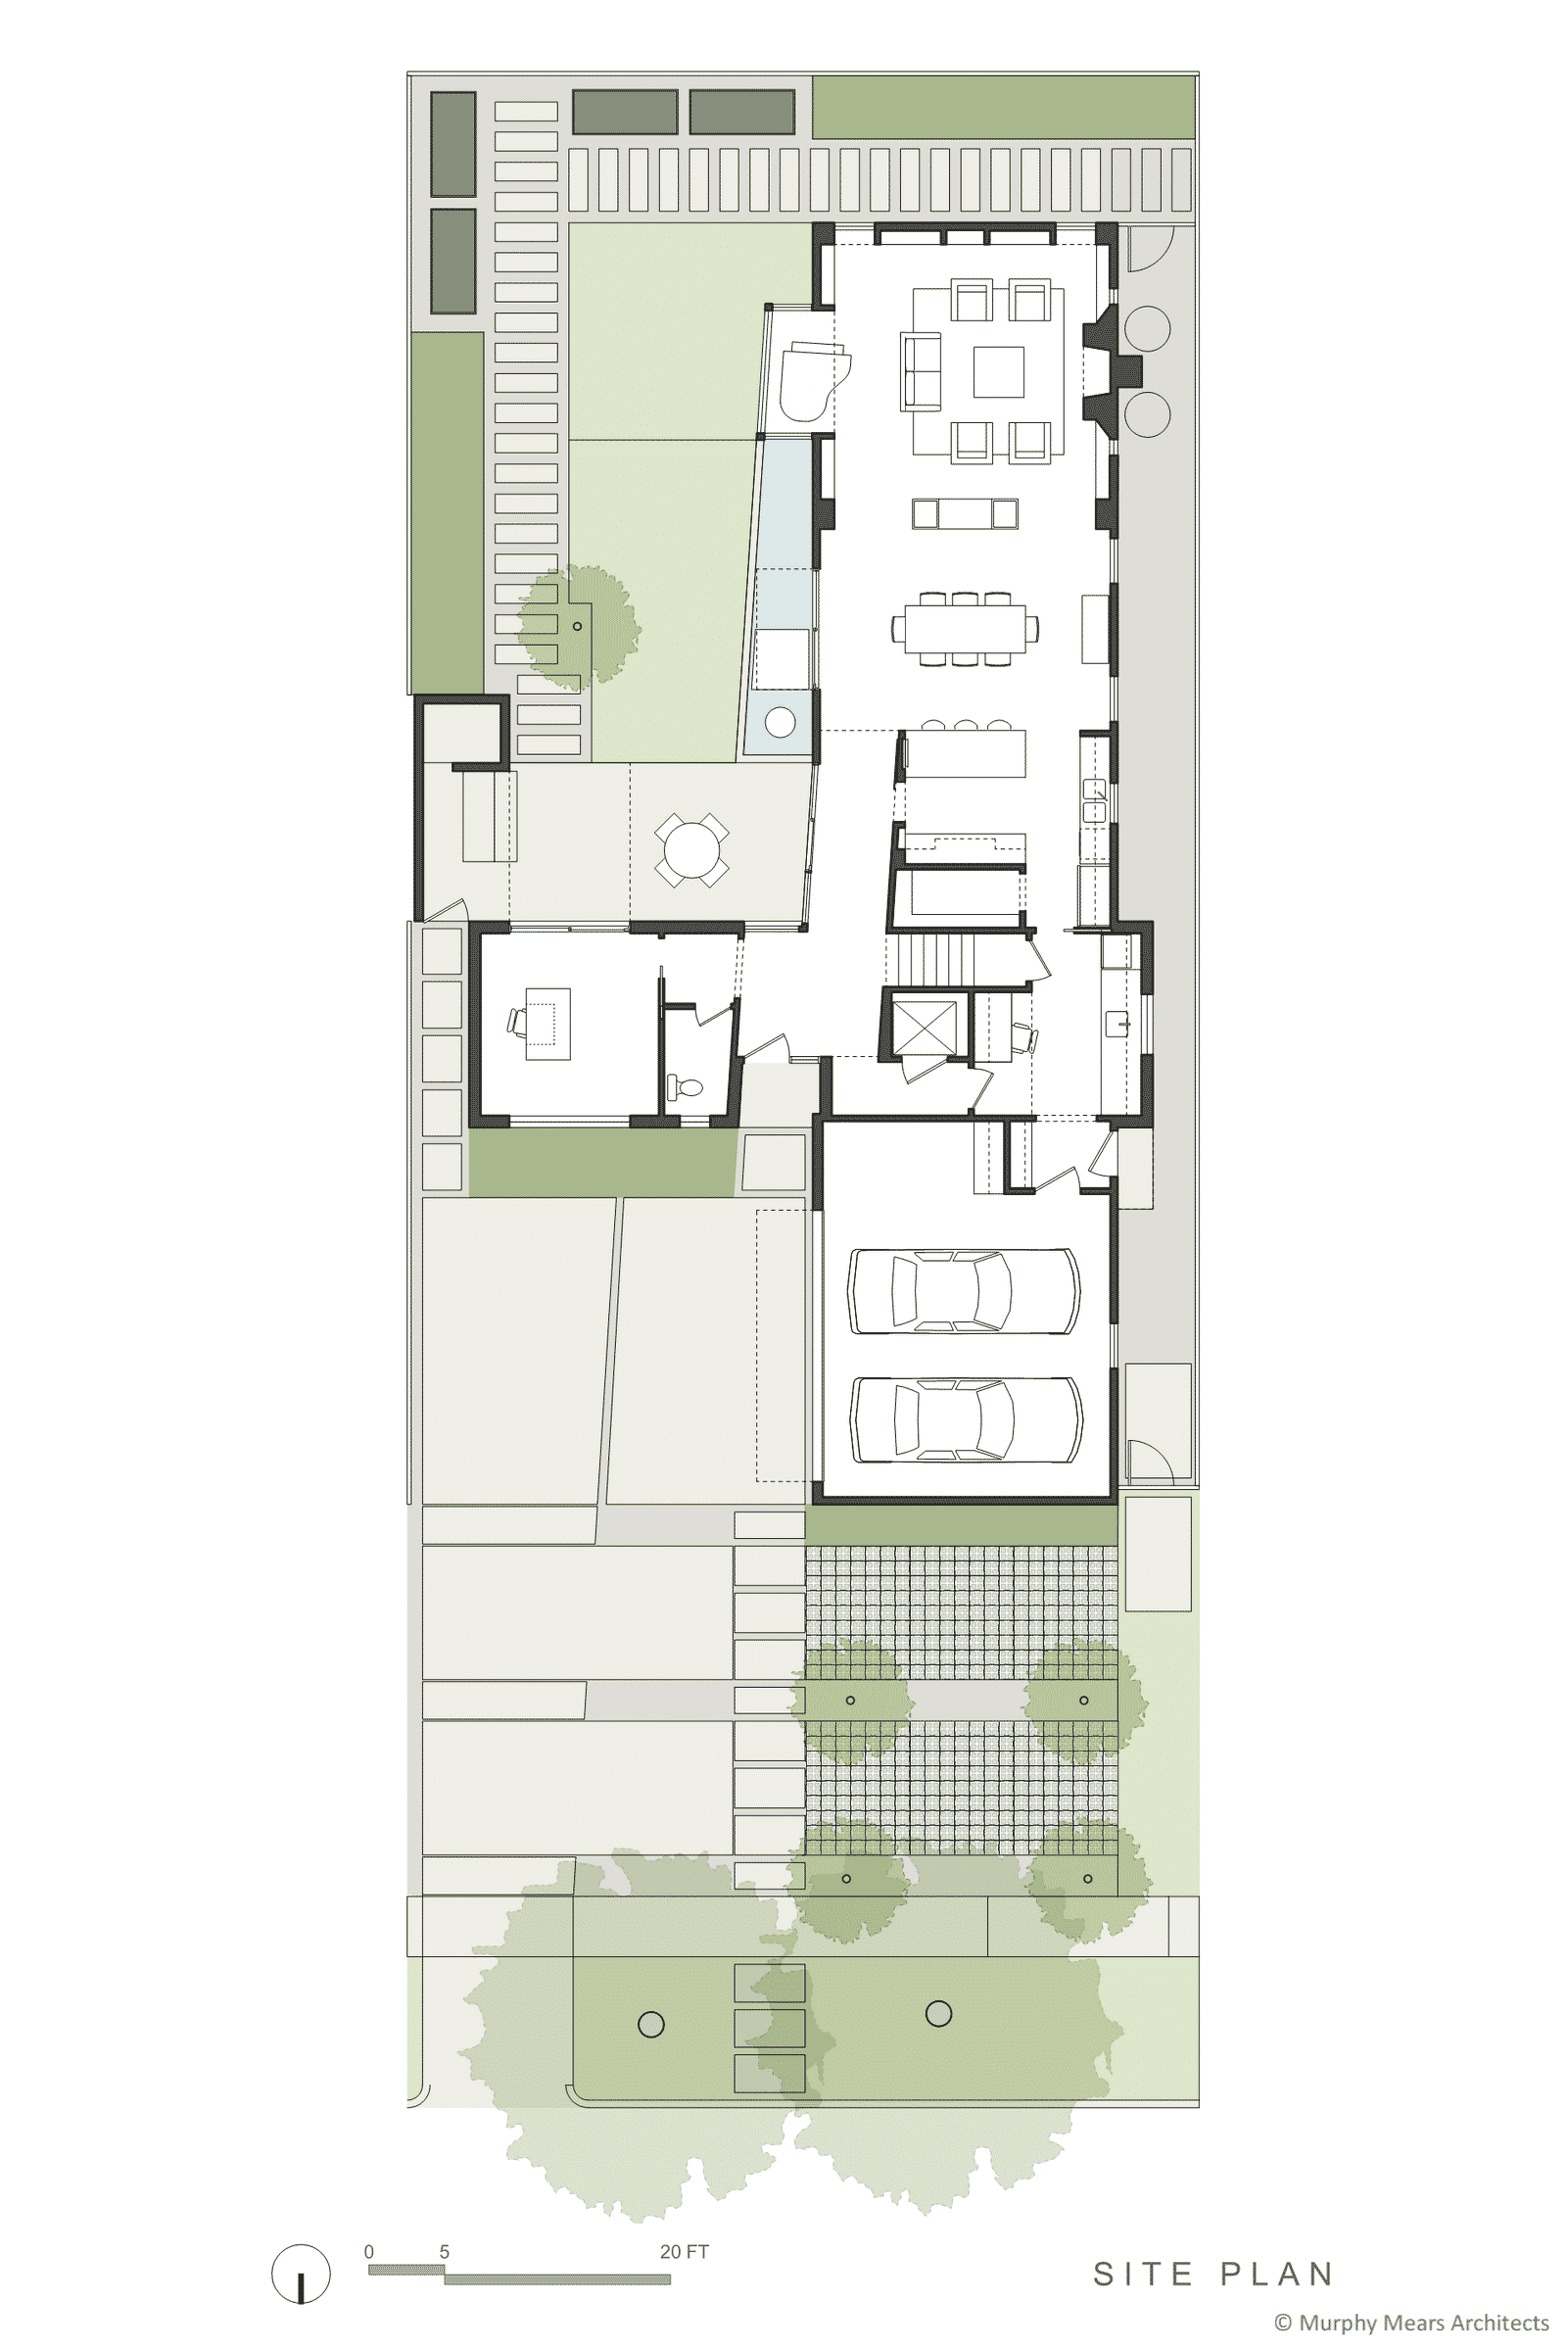 Site plan with common axis through center of site.